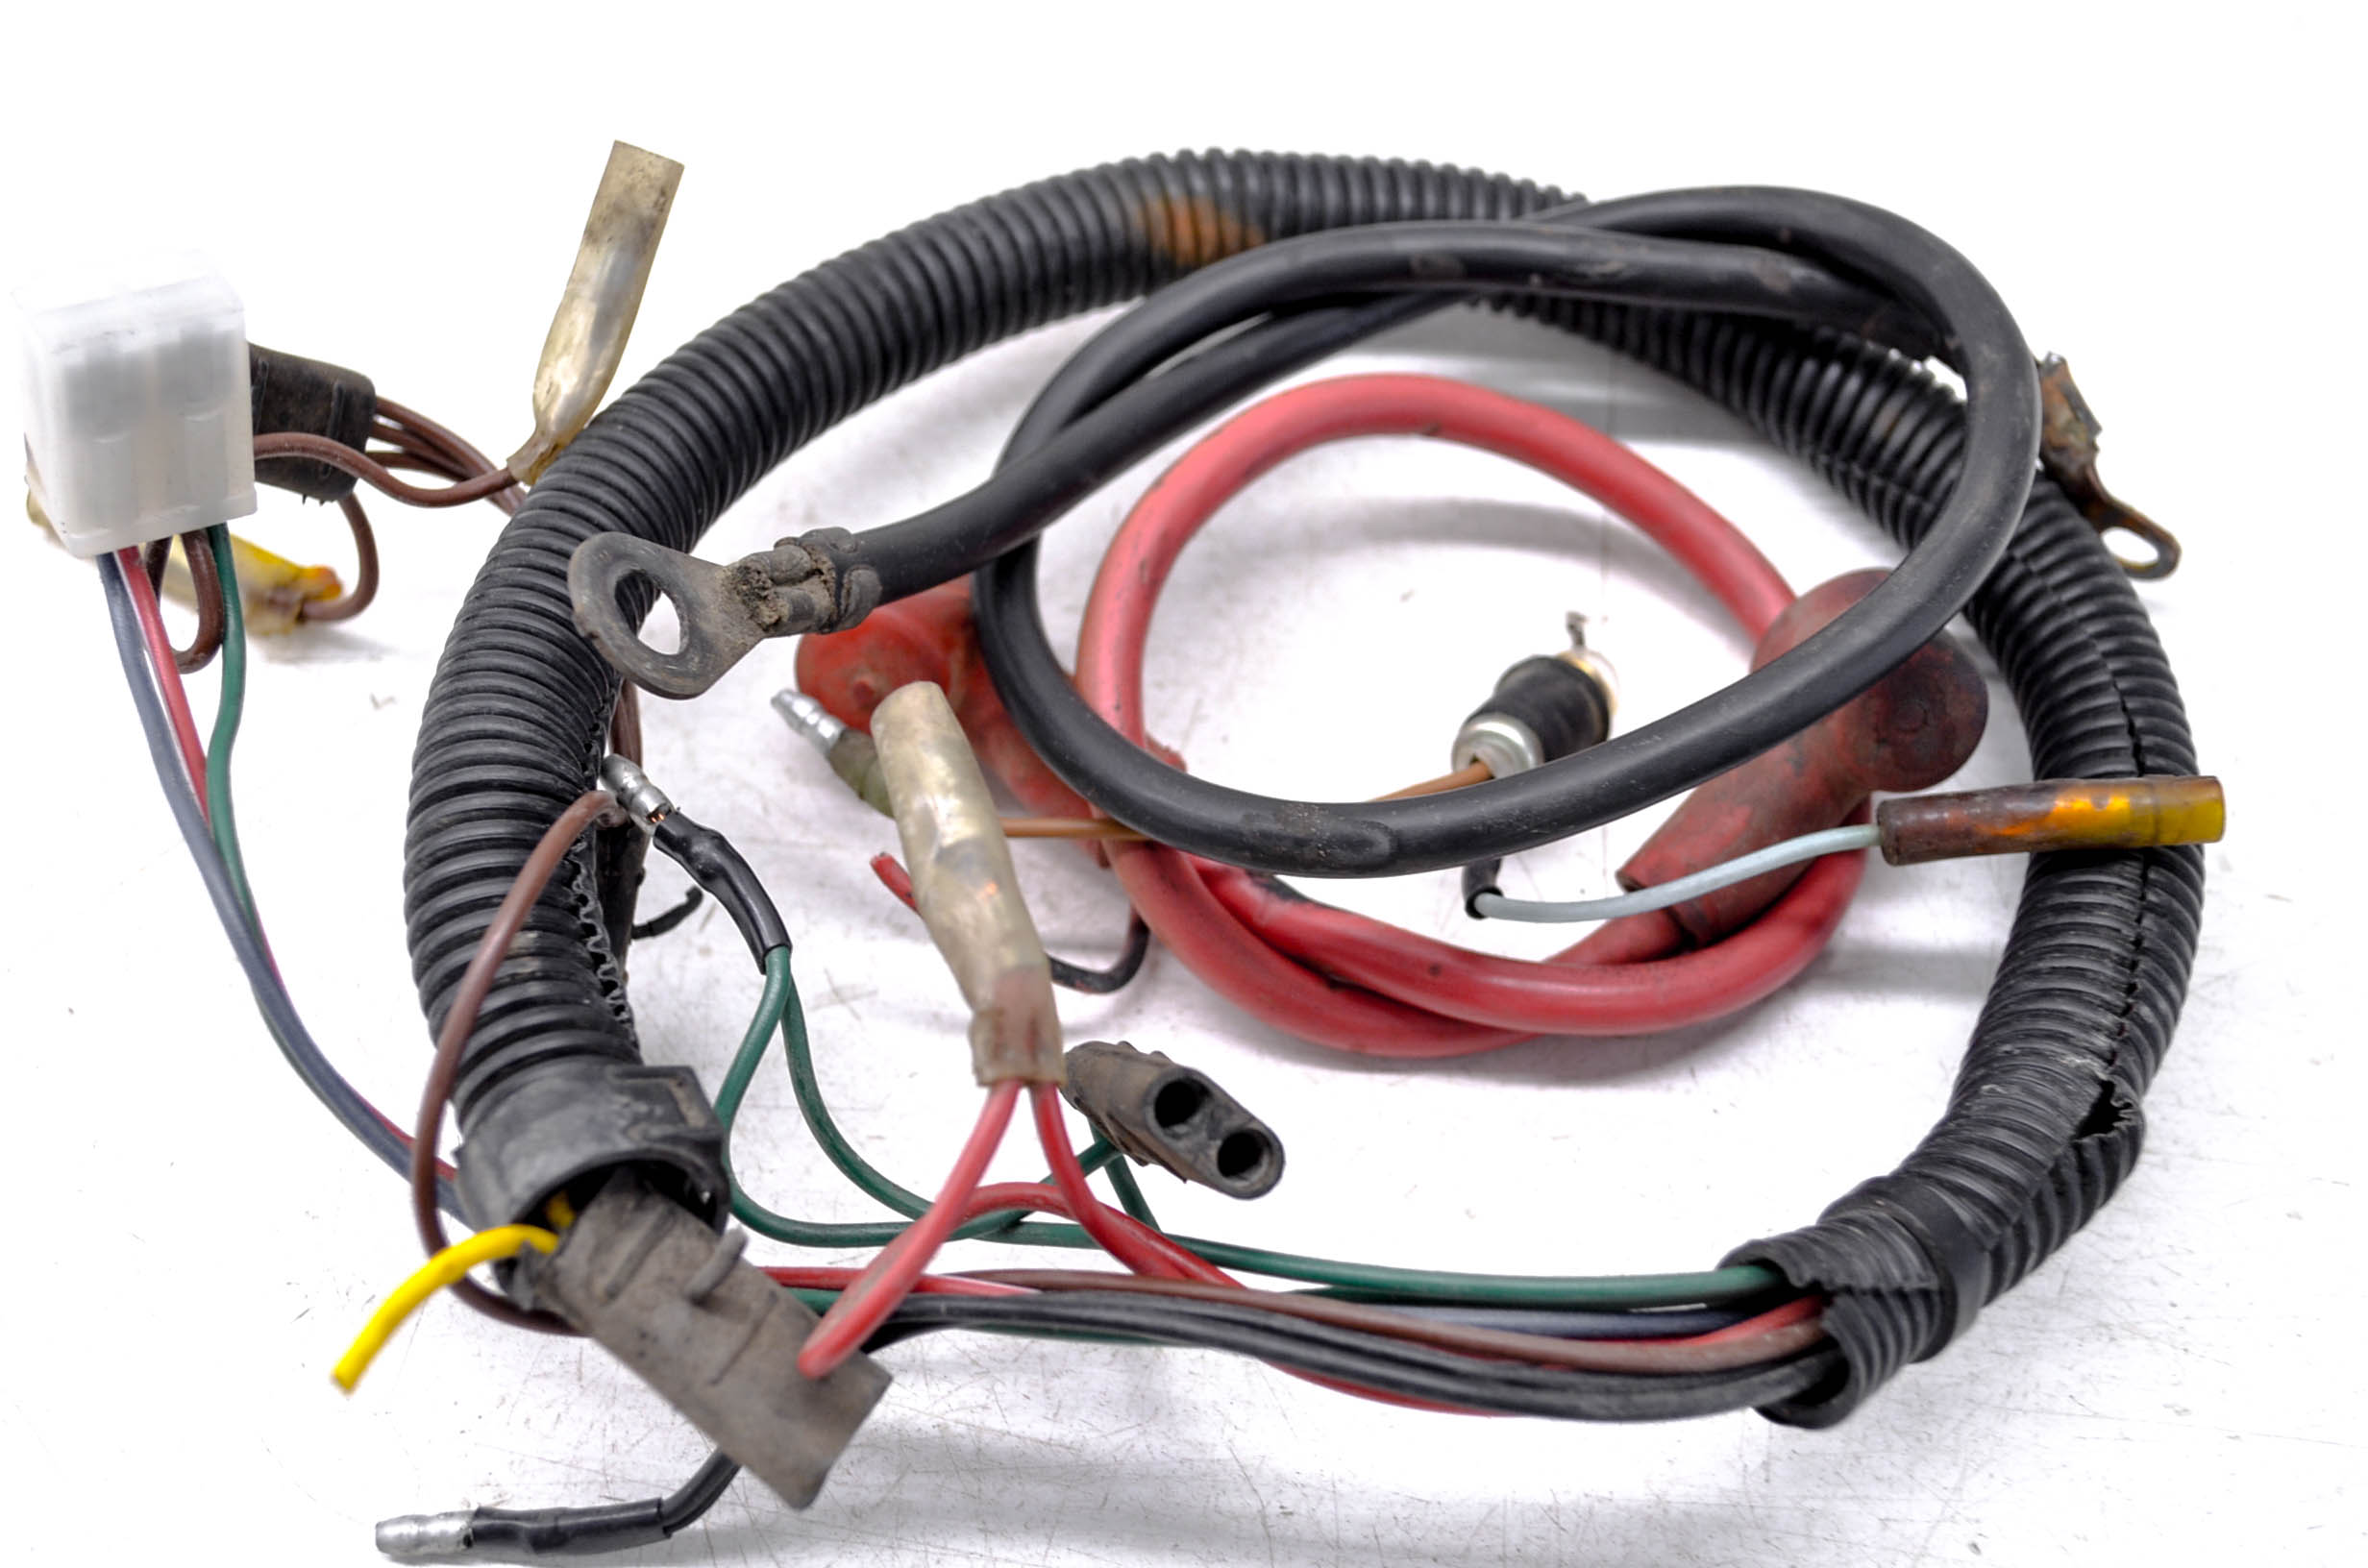 details about 87 polaris trail boss 250 2x4 wire harness electrical wiring Automotive Wiring Harness